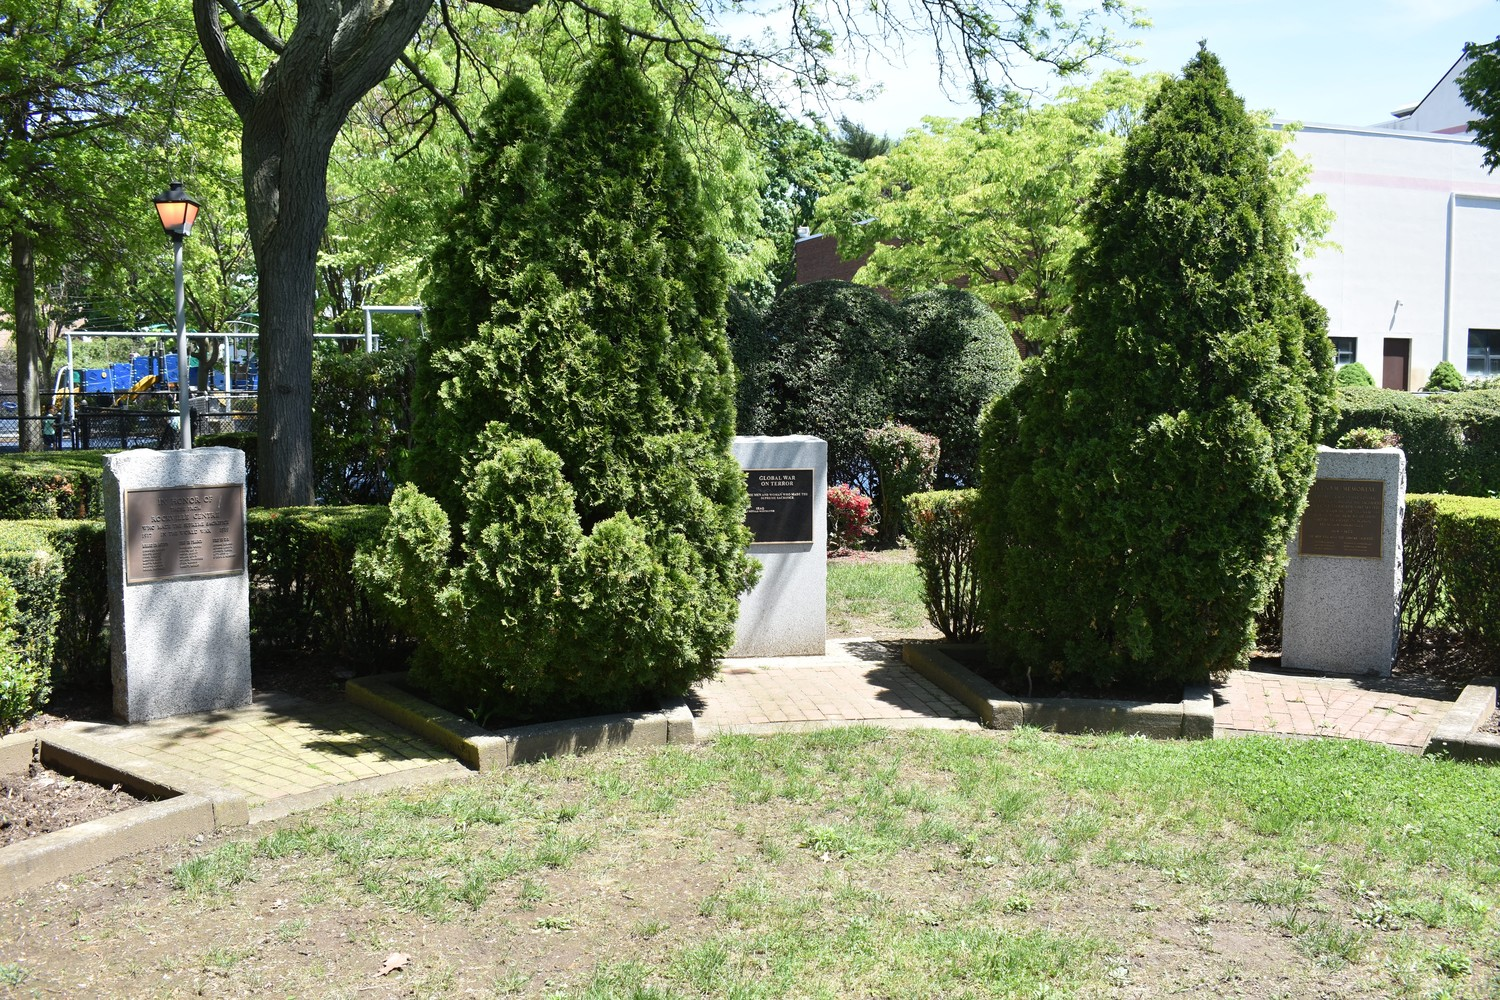 A new World War I monument will be added to the circle of memorials outside the John A. Anderson Recreation Center on May 28 after the village's Memorial Day Parade.